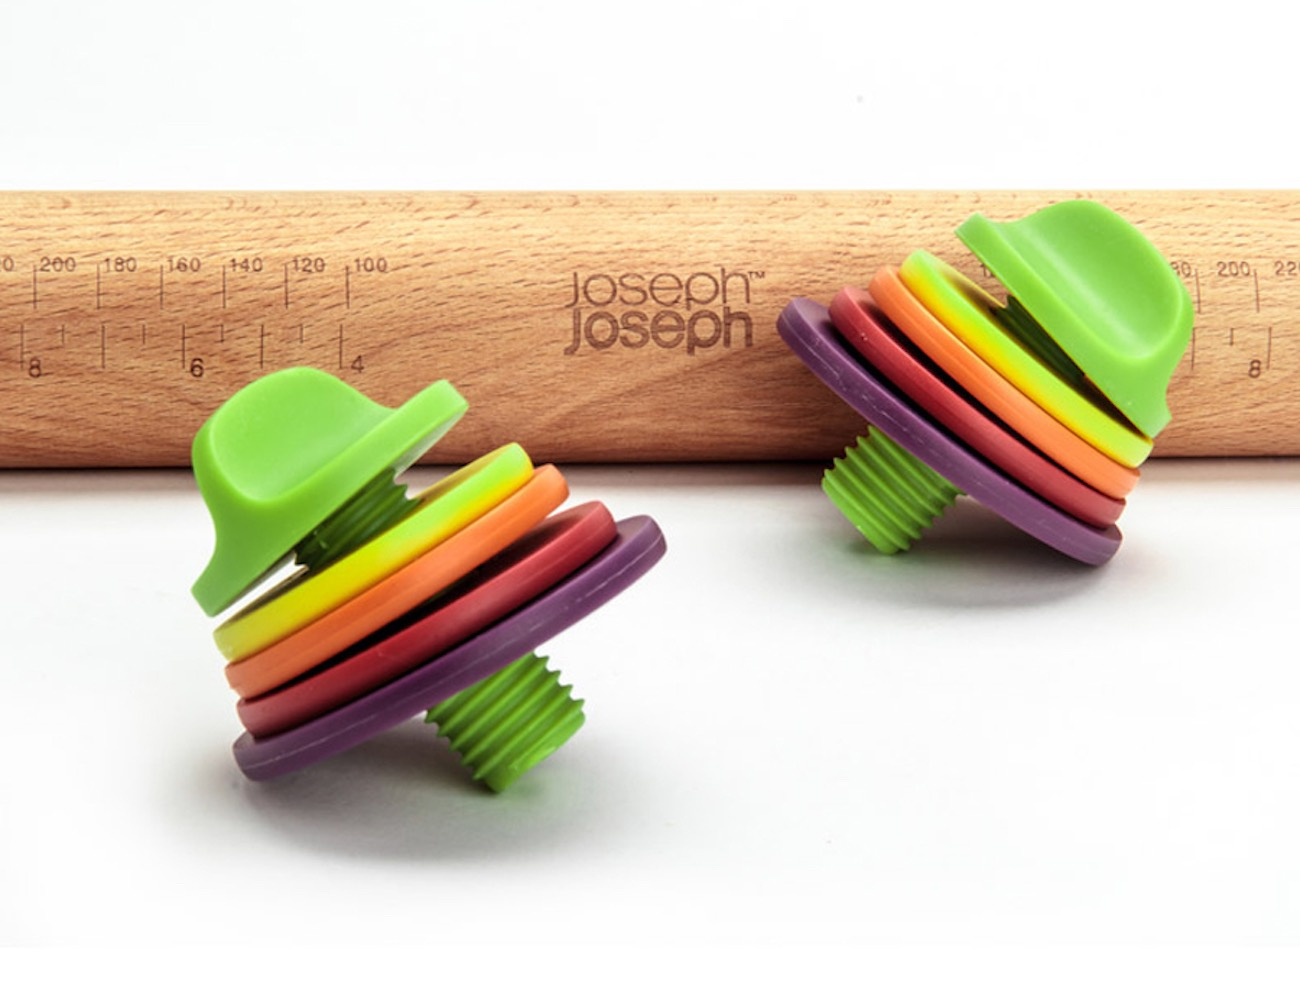 adjustable-rolling-pin-by-joseph-joseph-04